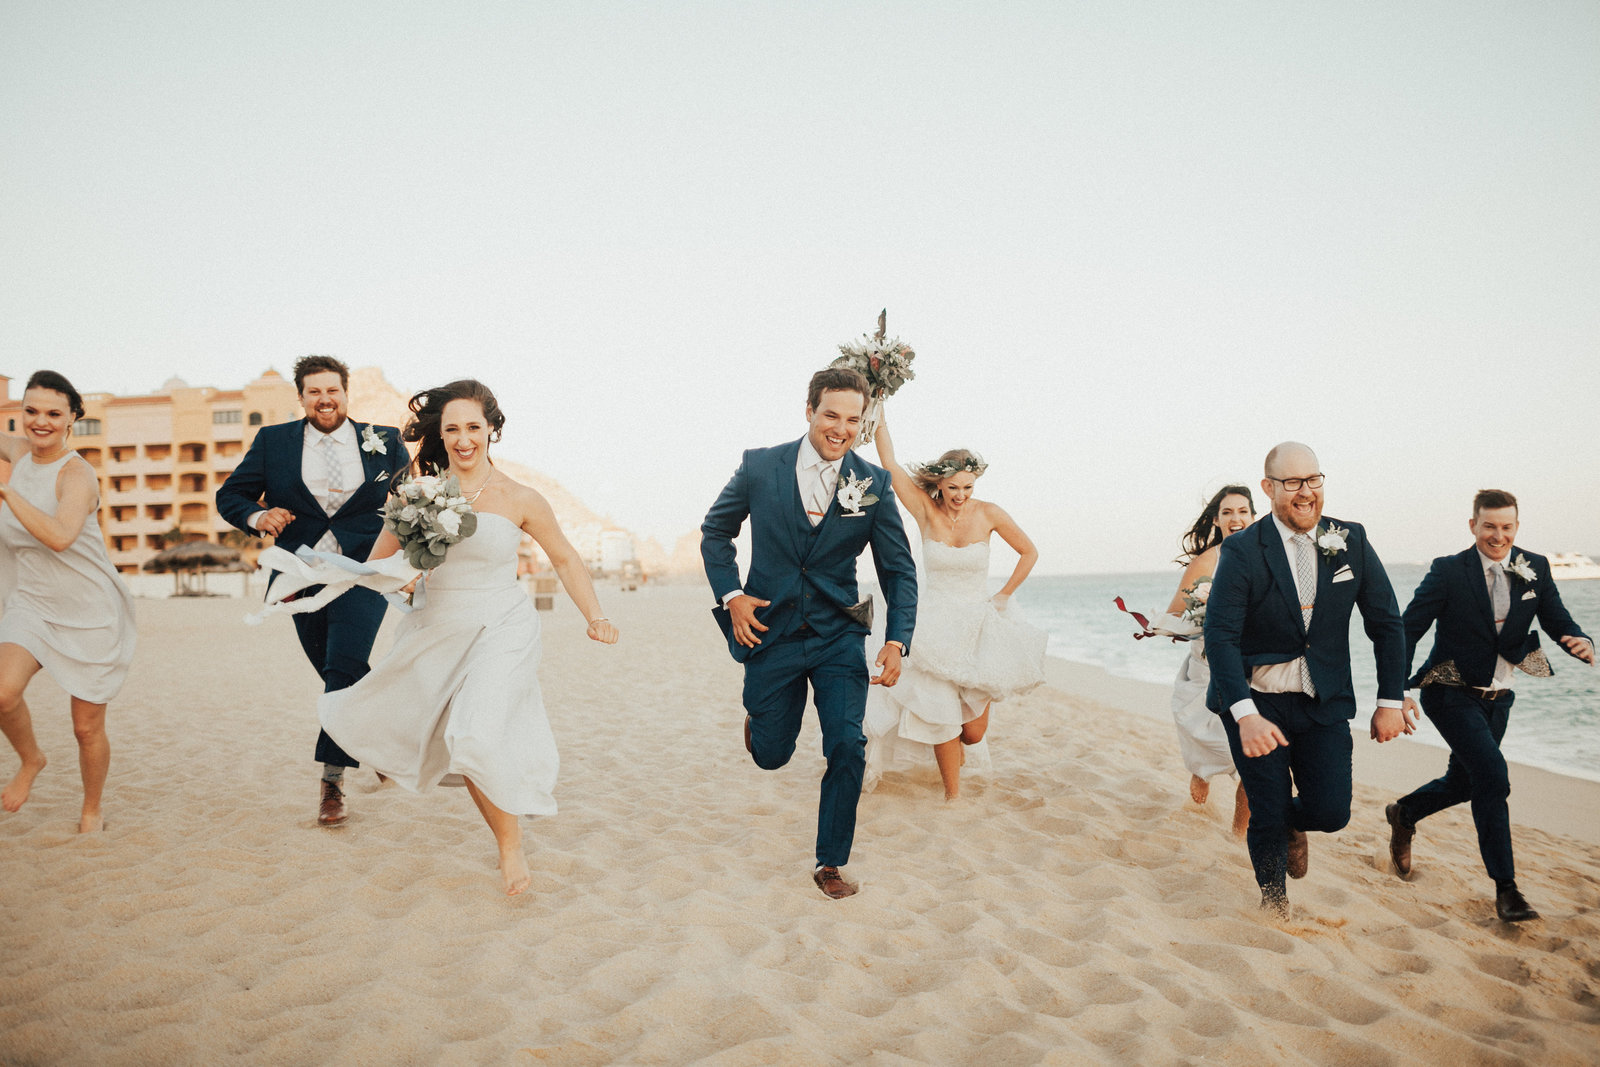 sandos finisterra wedding, cabo san lucas